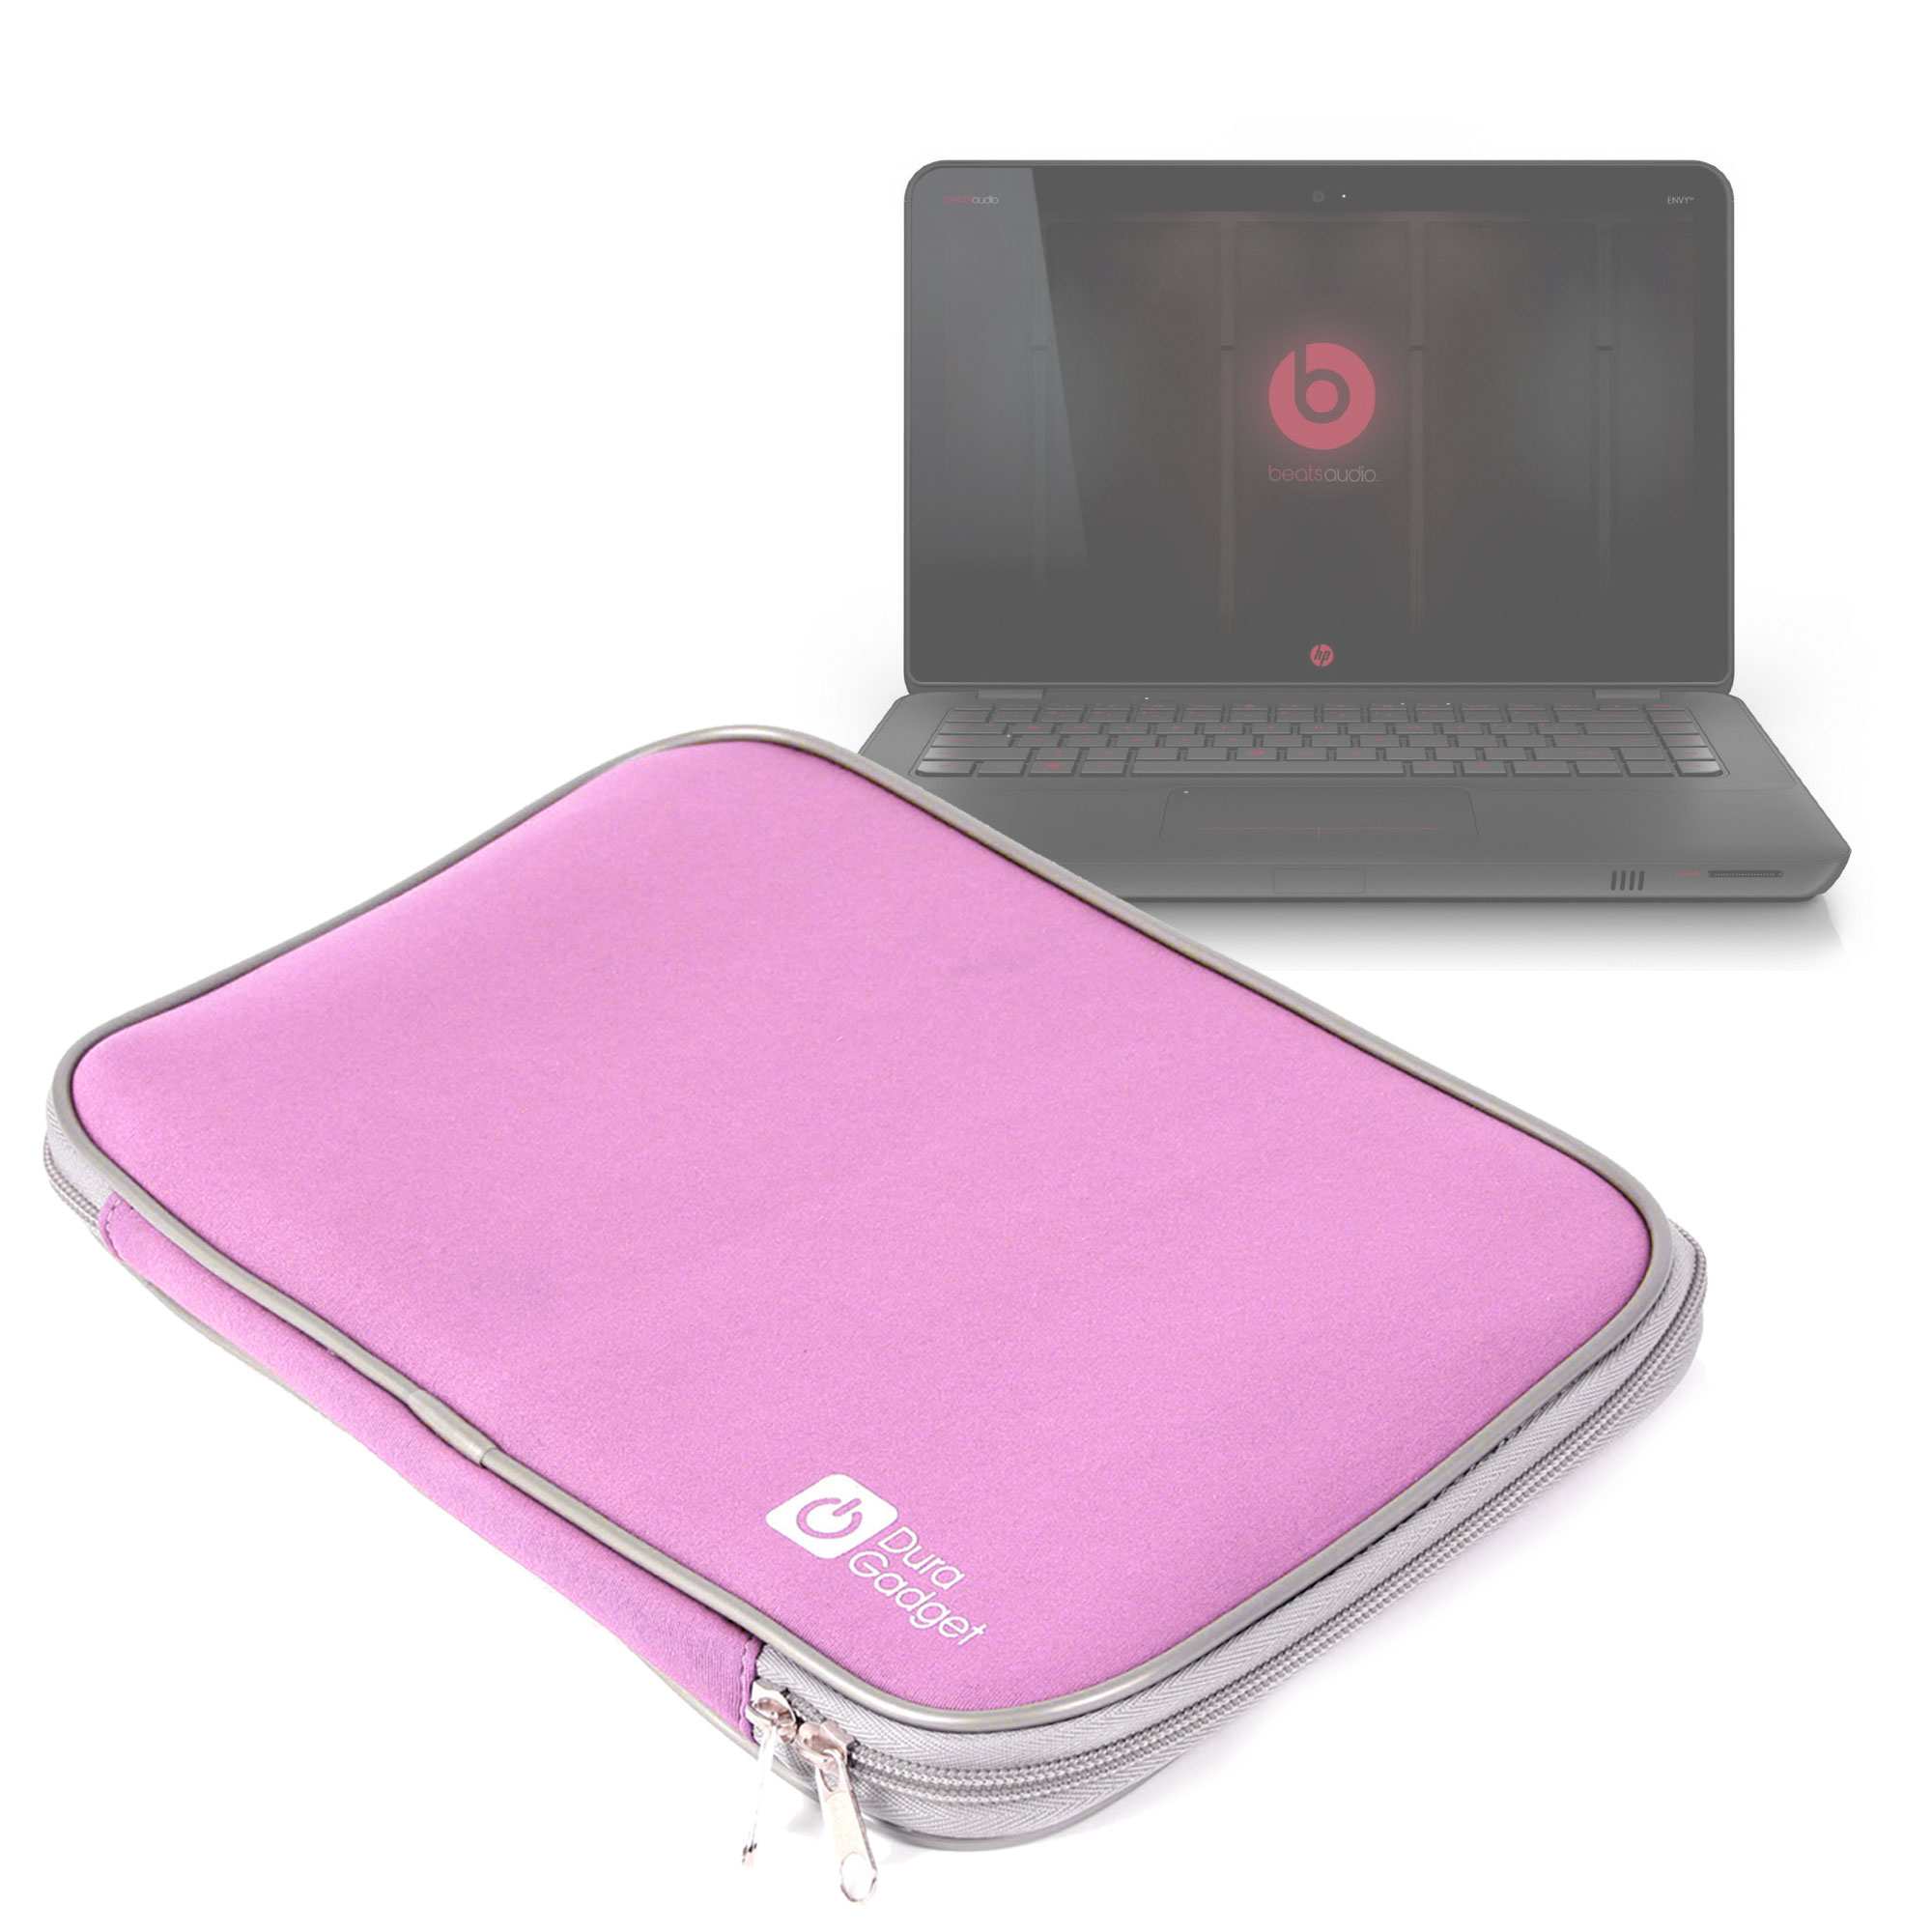 Squishy Laptop Cases : Pink Soft Neoprene Laptop Case/Pouch/Sleeve Fits HP Envy 14-1195ea Beats Edition